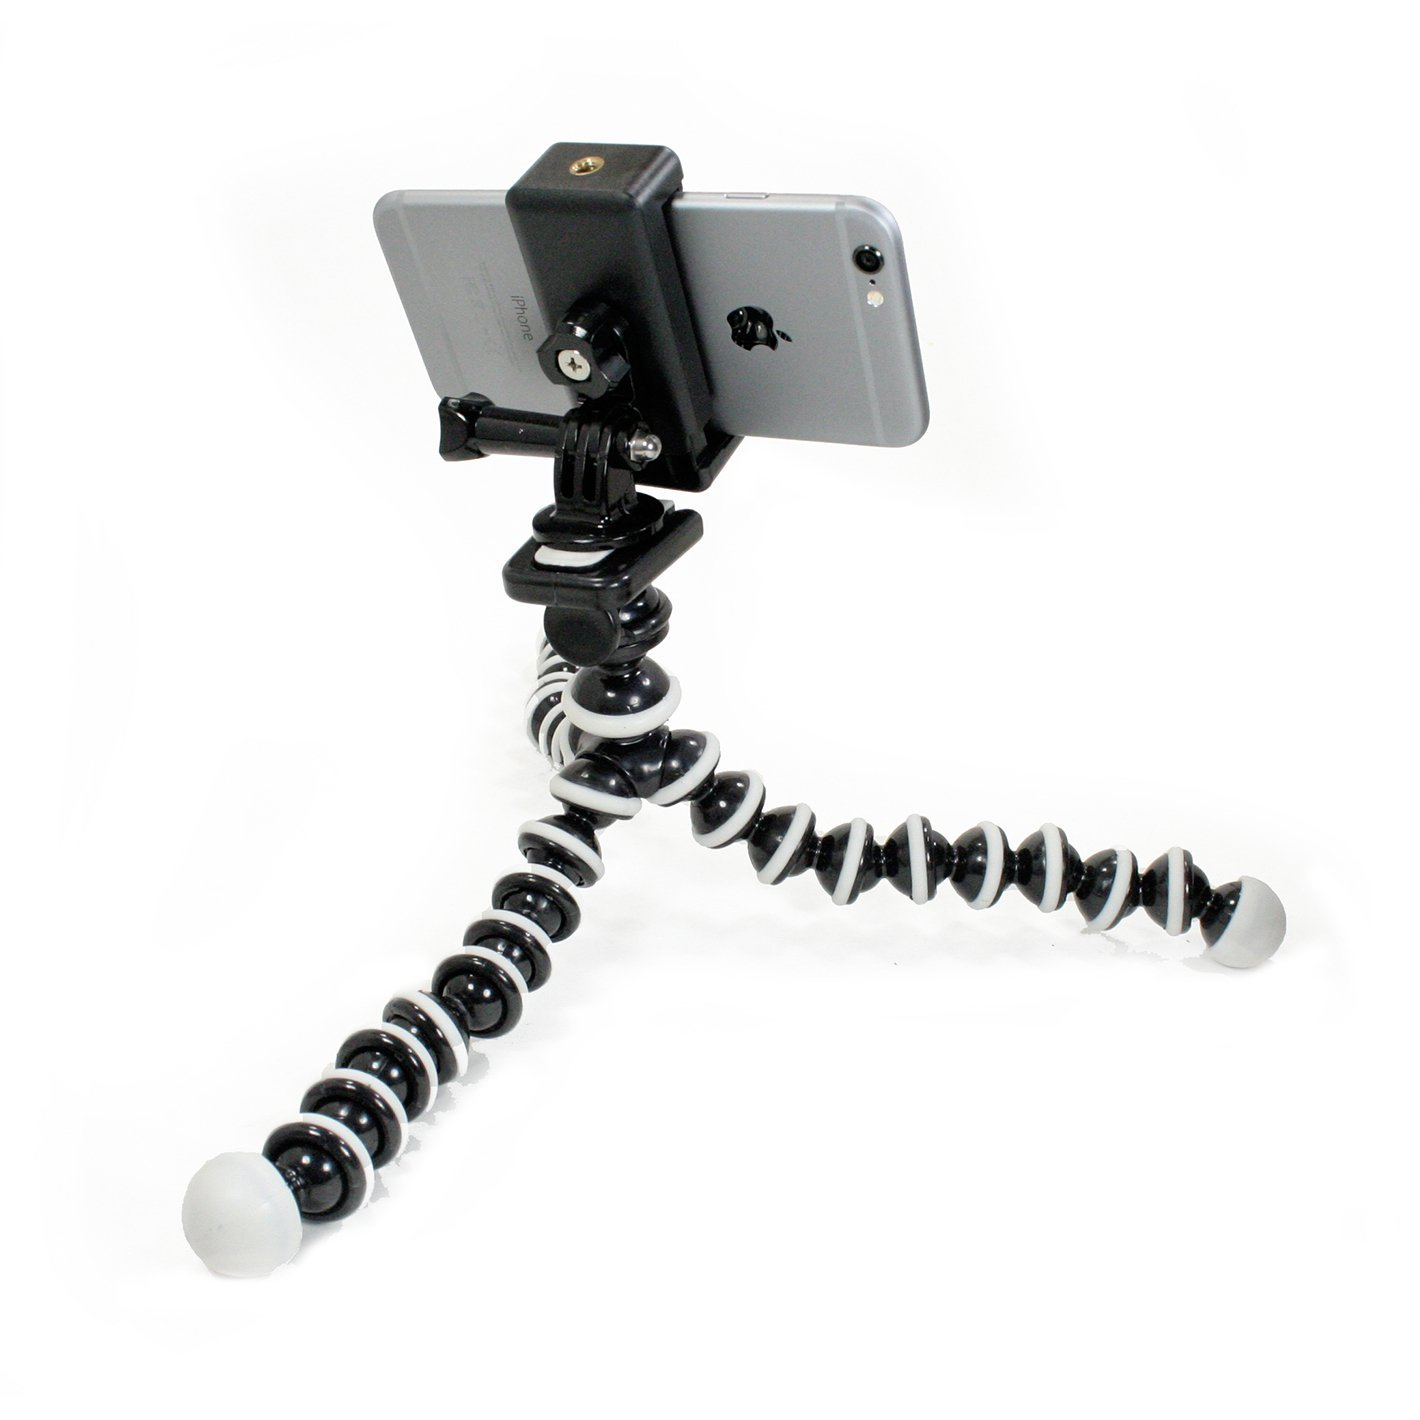 Livestream® Gear - Flexible Tripod with Rotatable Smartphone Clamp. Use for Video Recording, or Live Streaming on Periscope/Meerkat. Operable with Any Phone, or Use with GoPro Camera.